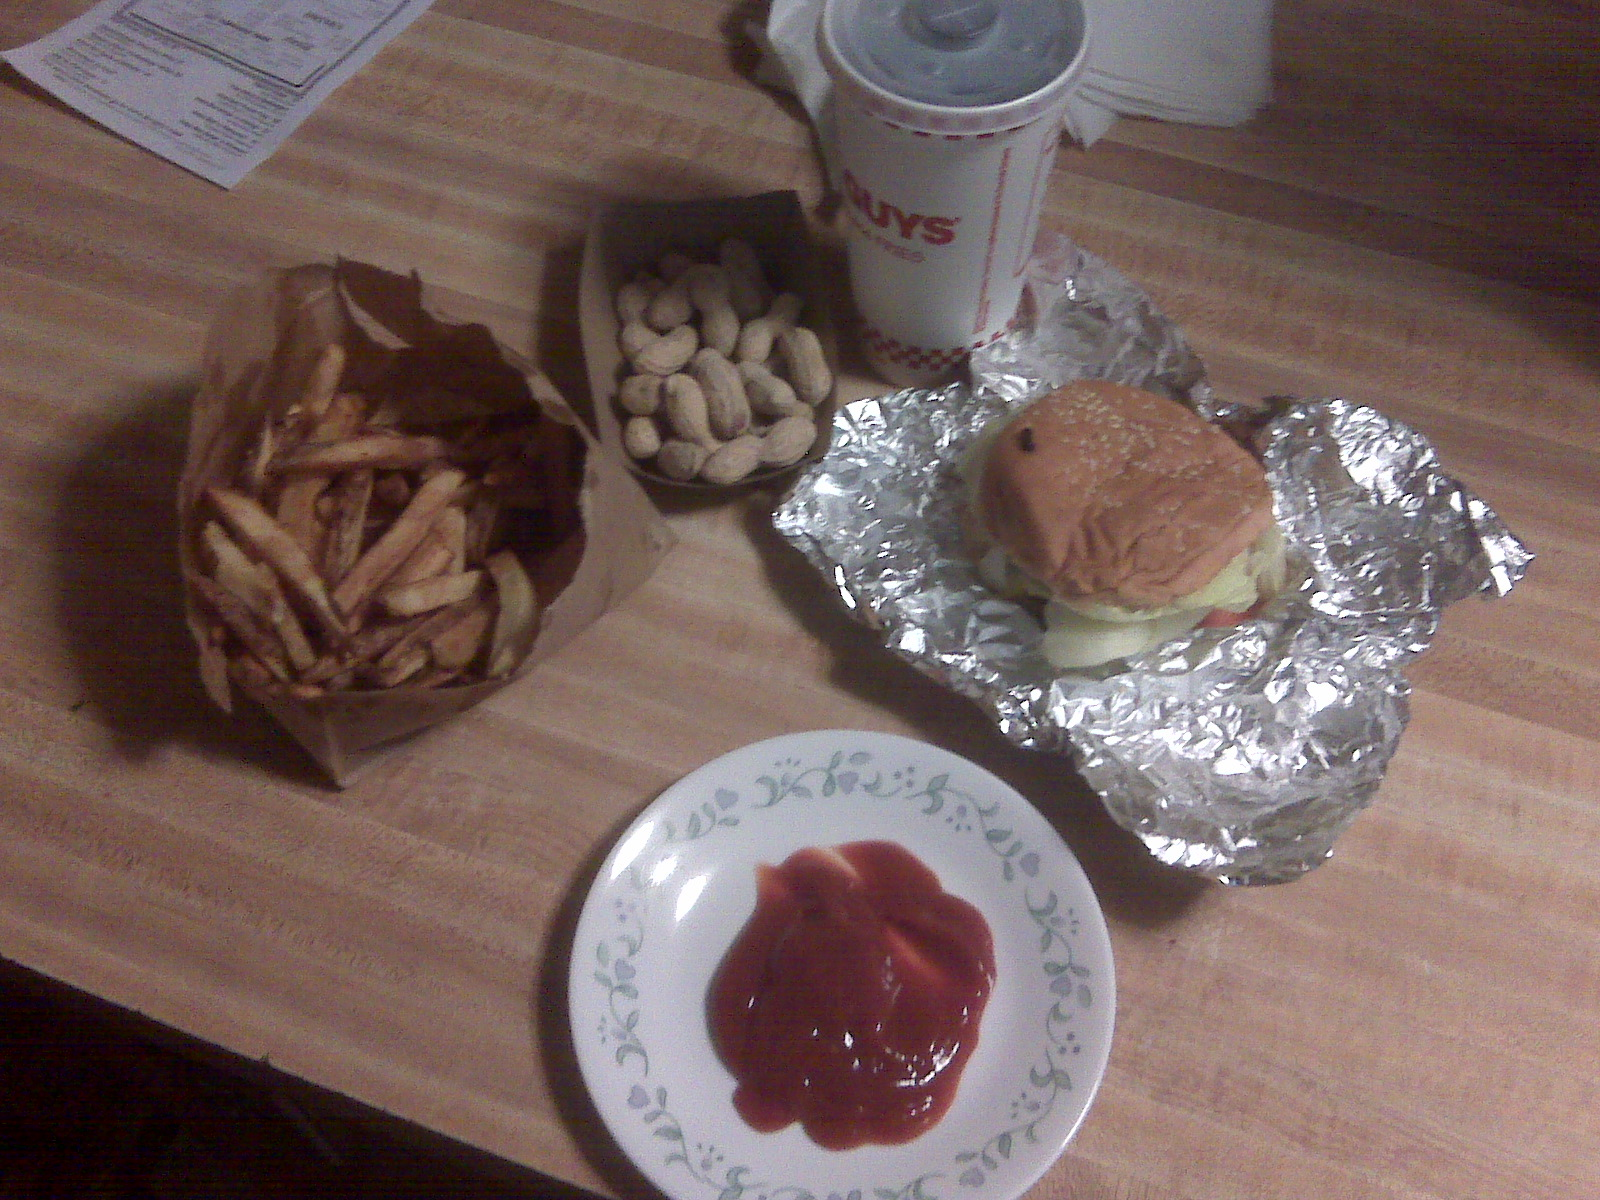 Five Guys and Fries Nashua NH :: My mom called me up on her way back from Boston and asked if i wanted a burger and fries from Five Guys and Fries(http://www.fiveguys.com/), in Nashua NH i said heck yes.